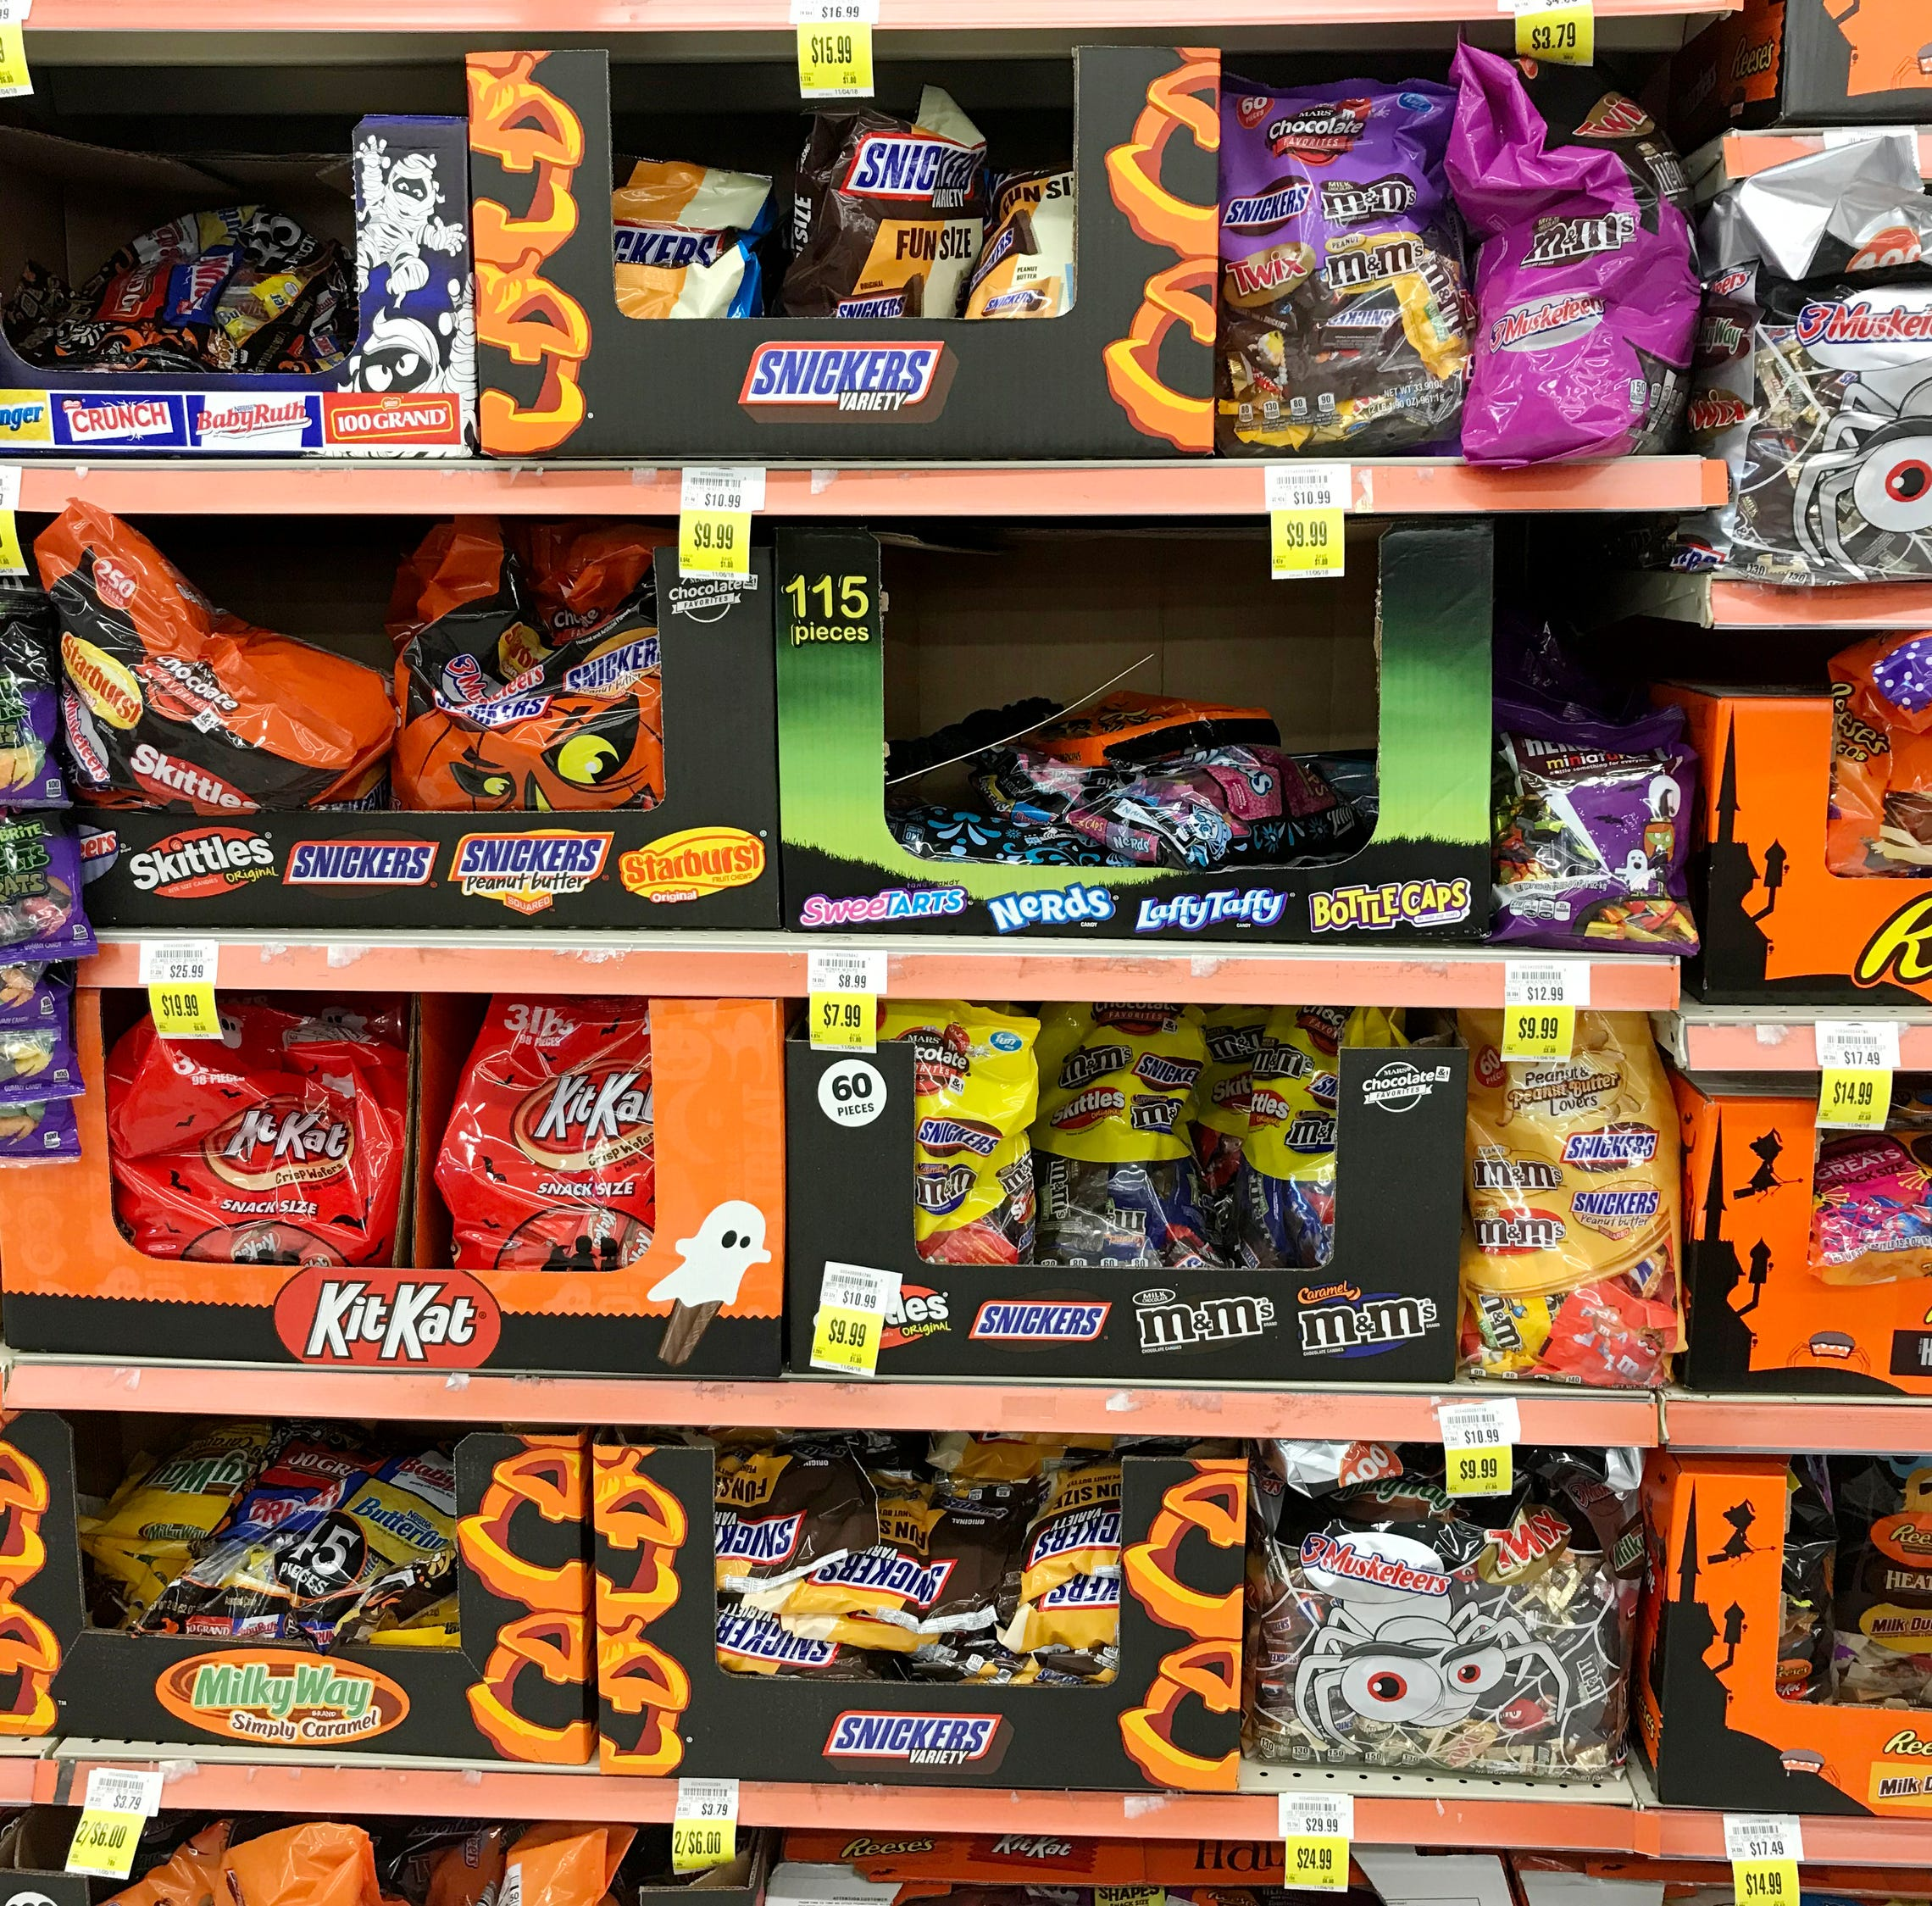 Ms. Cheap's guide to saving on Halloween candy, costumes, pumpkins and more